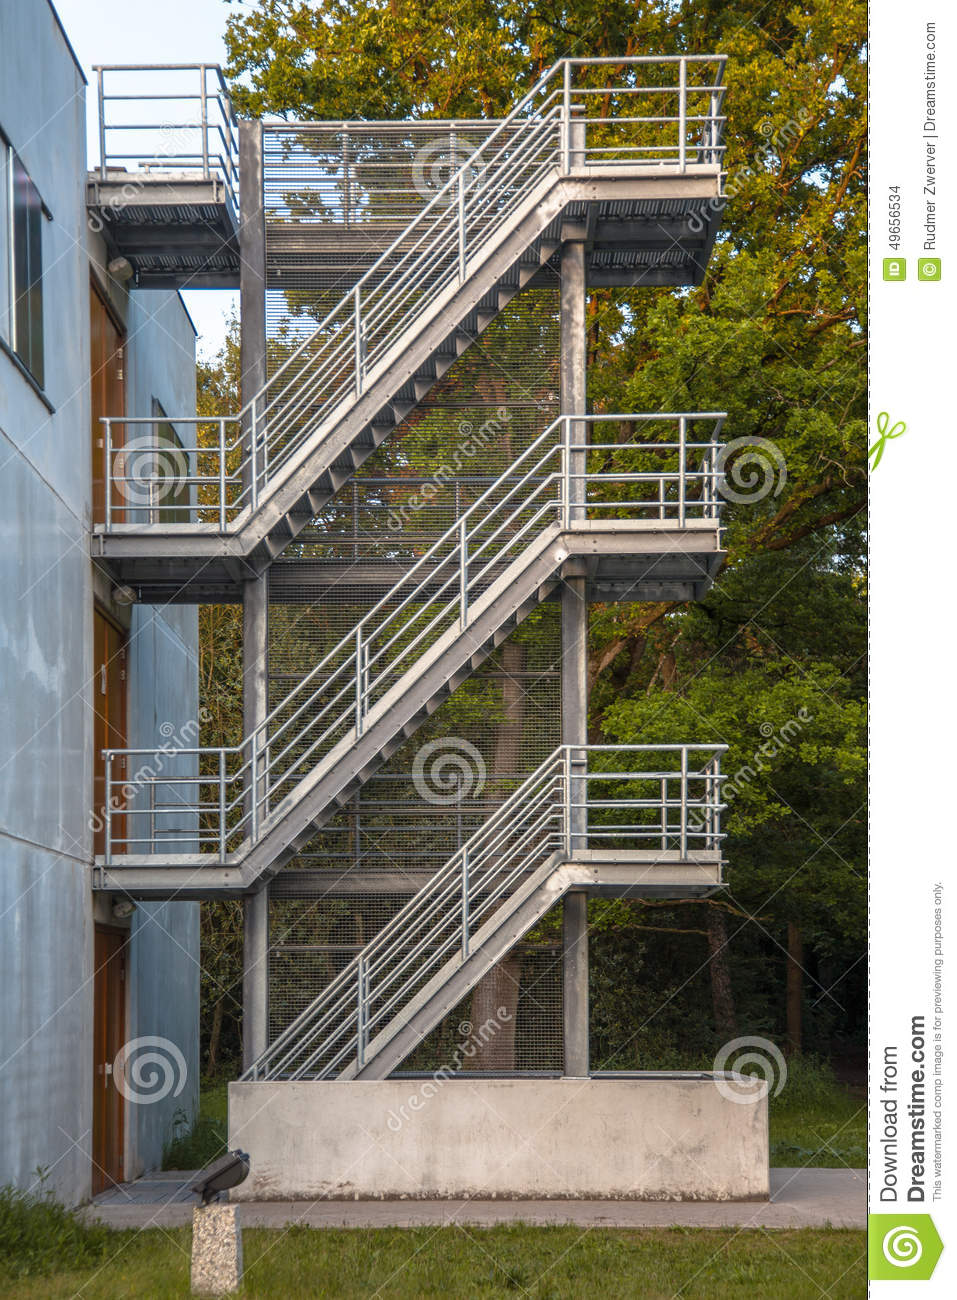 Foto De Archivo Escaleras Del Escape De La Emergencia Del Hierro Image49656534 together with Built On Site Garages as well 3696014 besides Ancestral Contemporary Architecture 3d Like Volumes Defining A House In Peru further Exterior Step Raiiling. on outdoor metal stairs